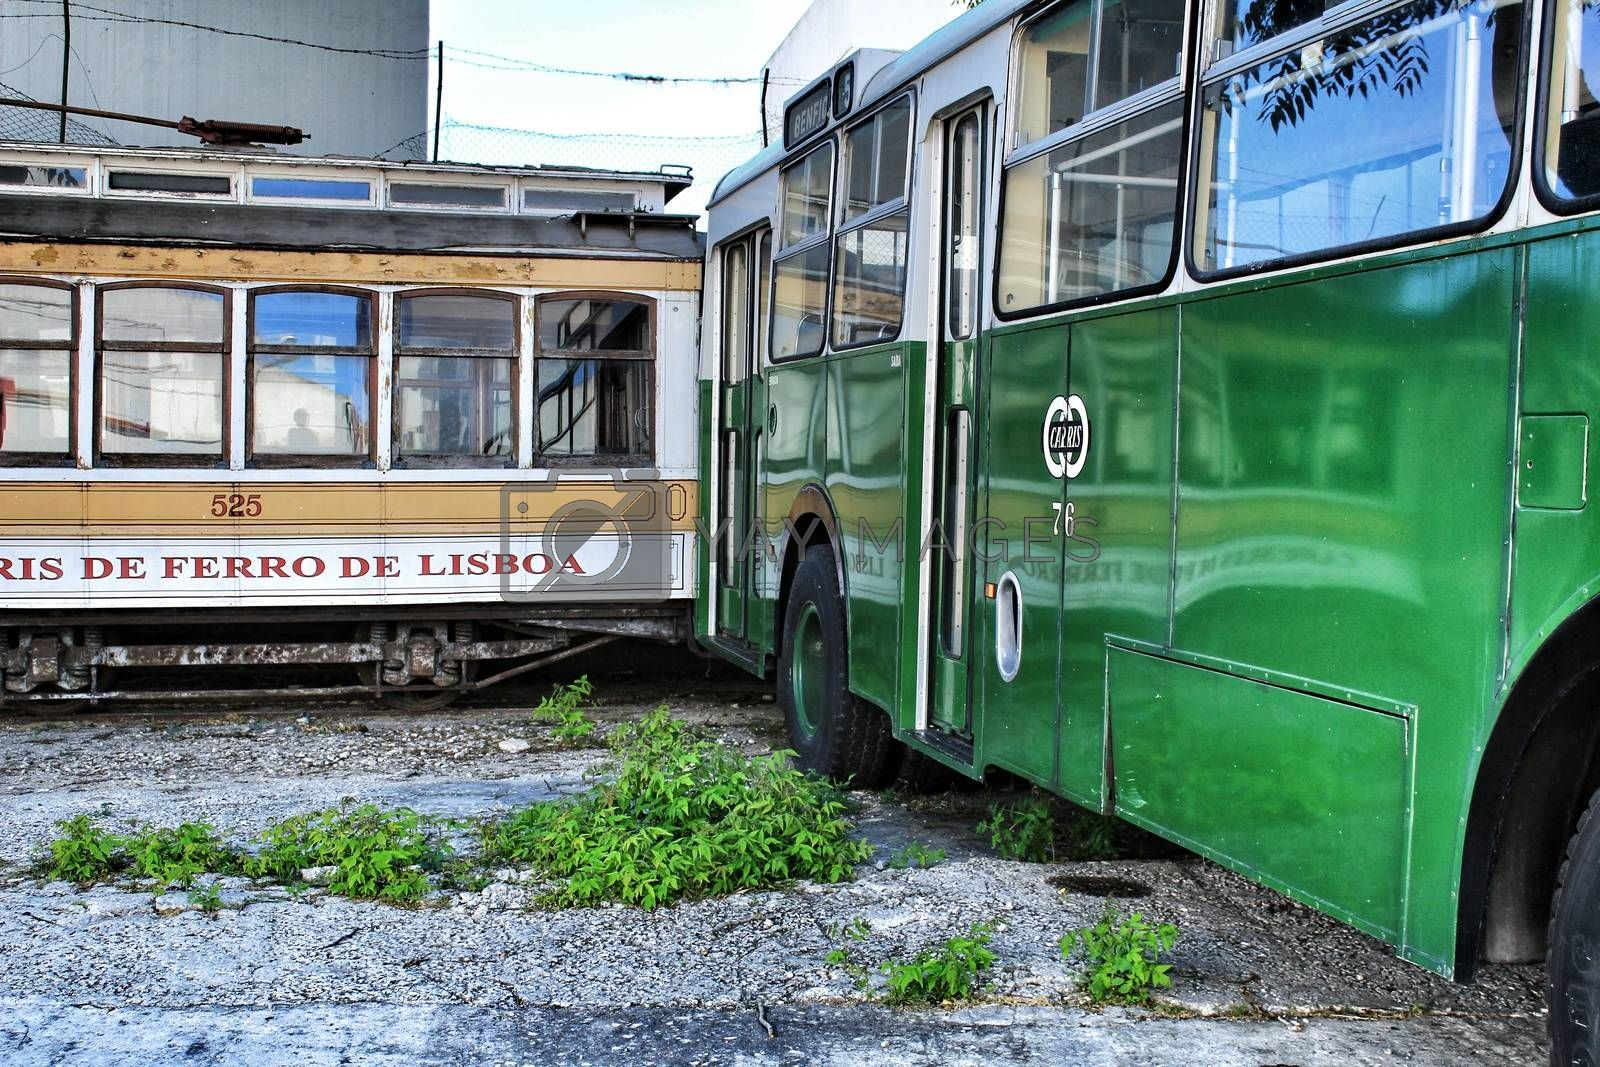 Lisbon, Portugal- June 15, 2018: Old and colorful passenger bus and vintage tram in a museum.